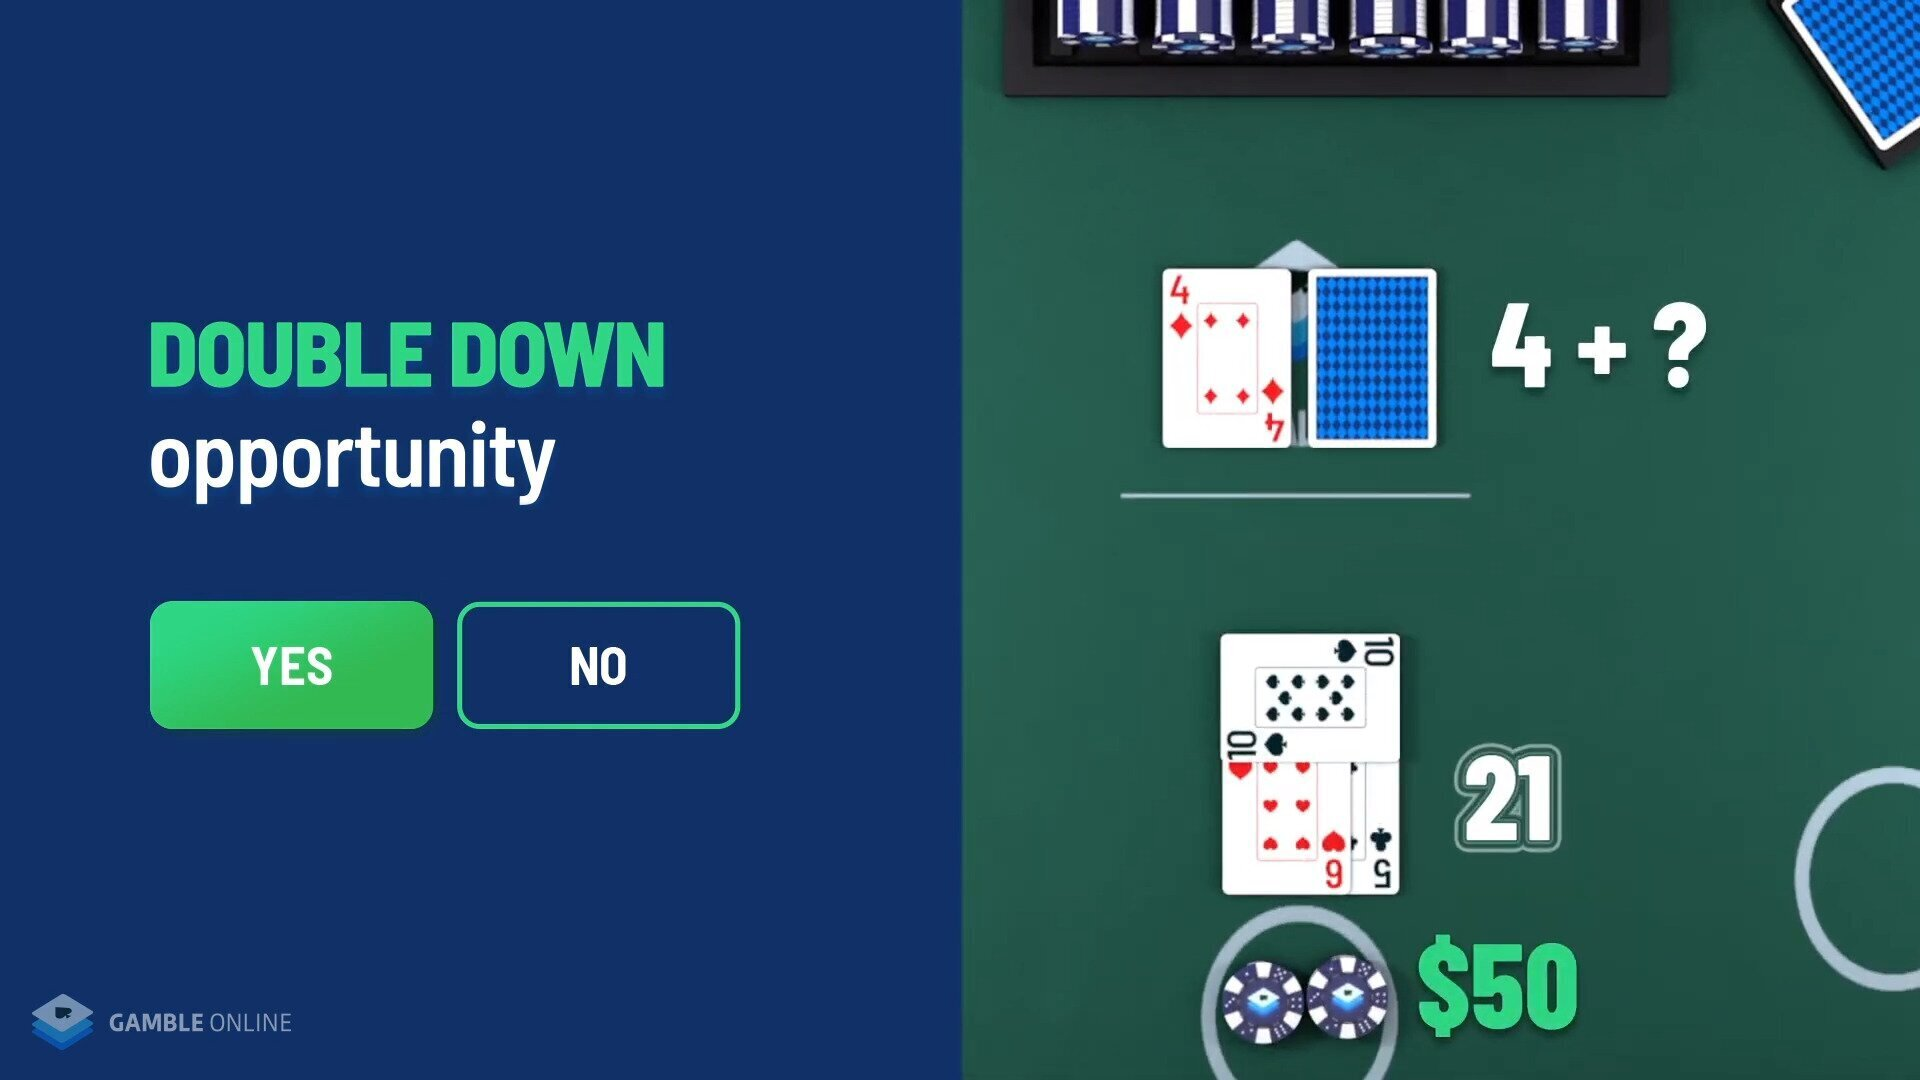 How-to-Play-Blackjack-For-Beginners-_-Tutorials-Tips-Strategy-5-44-screenshot